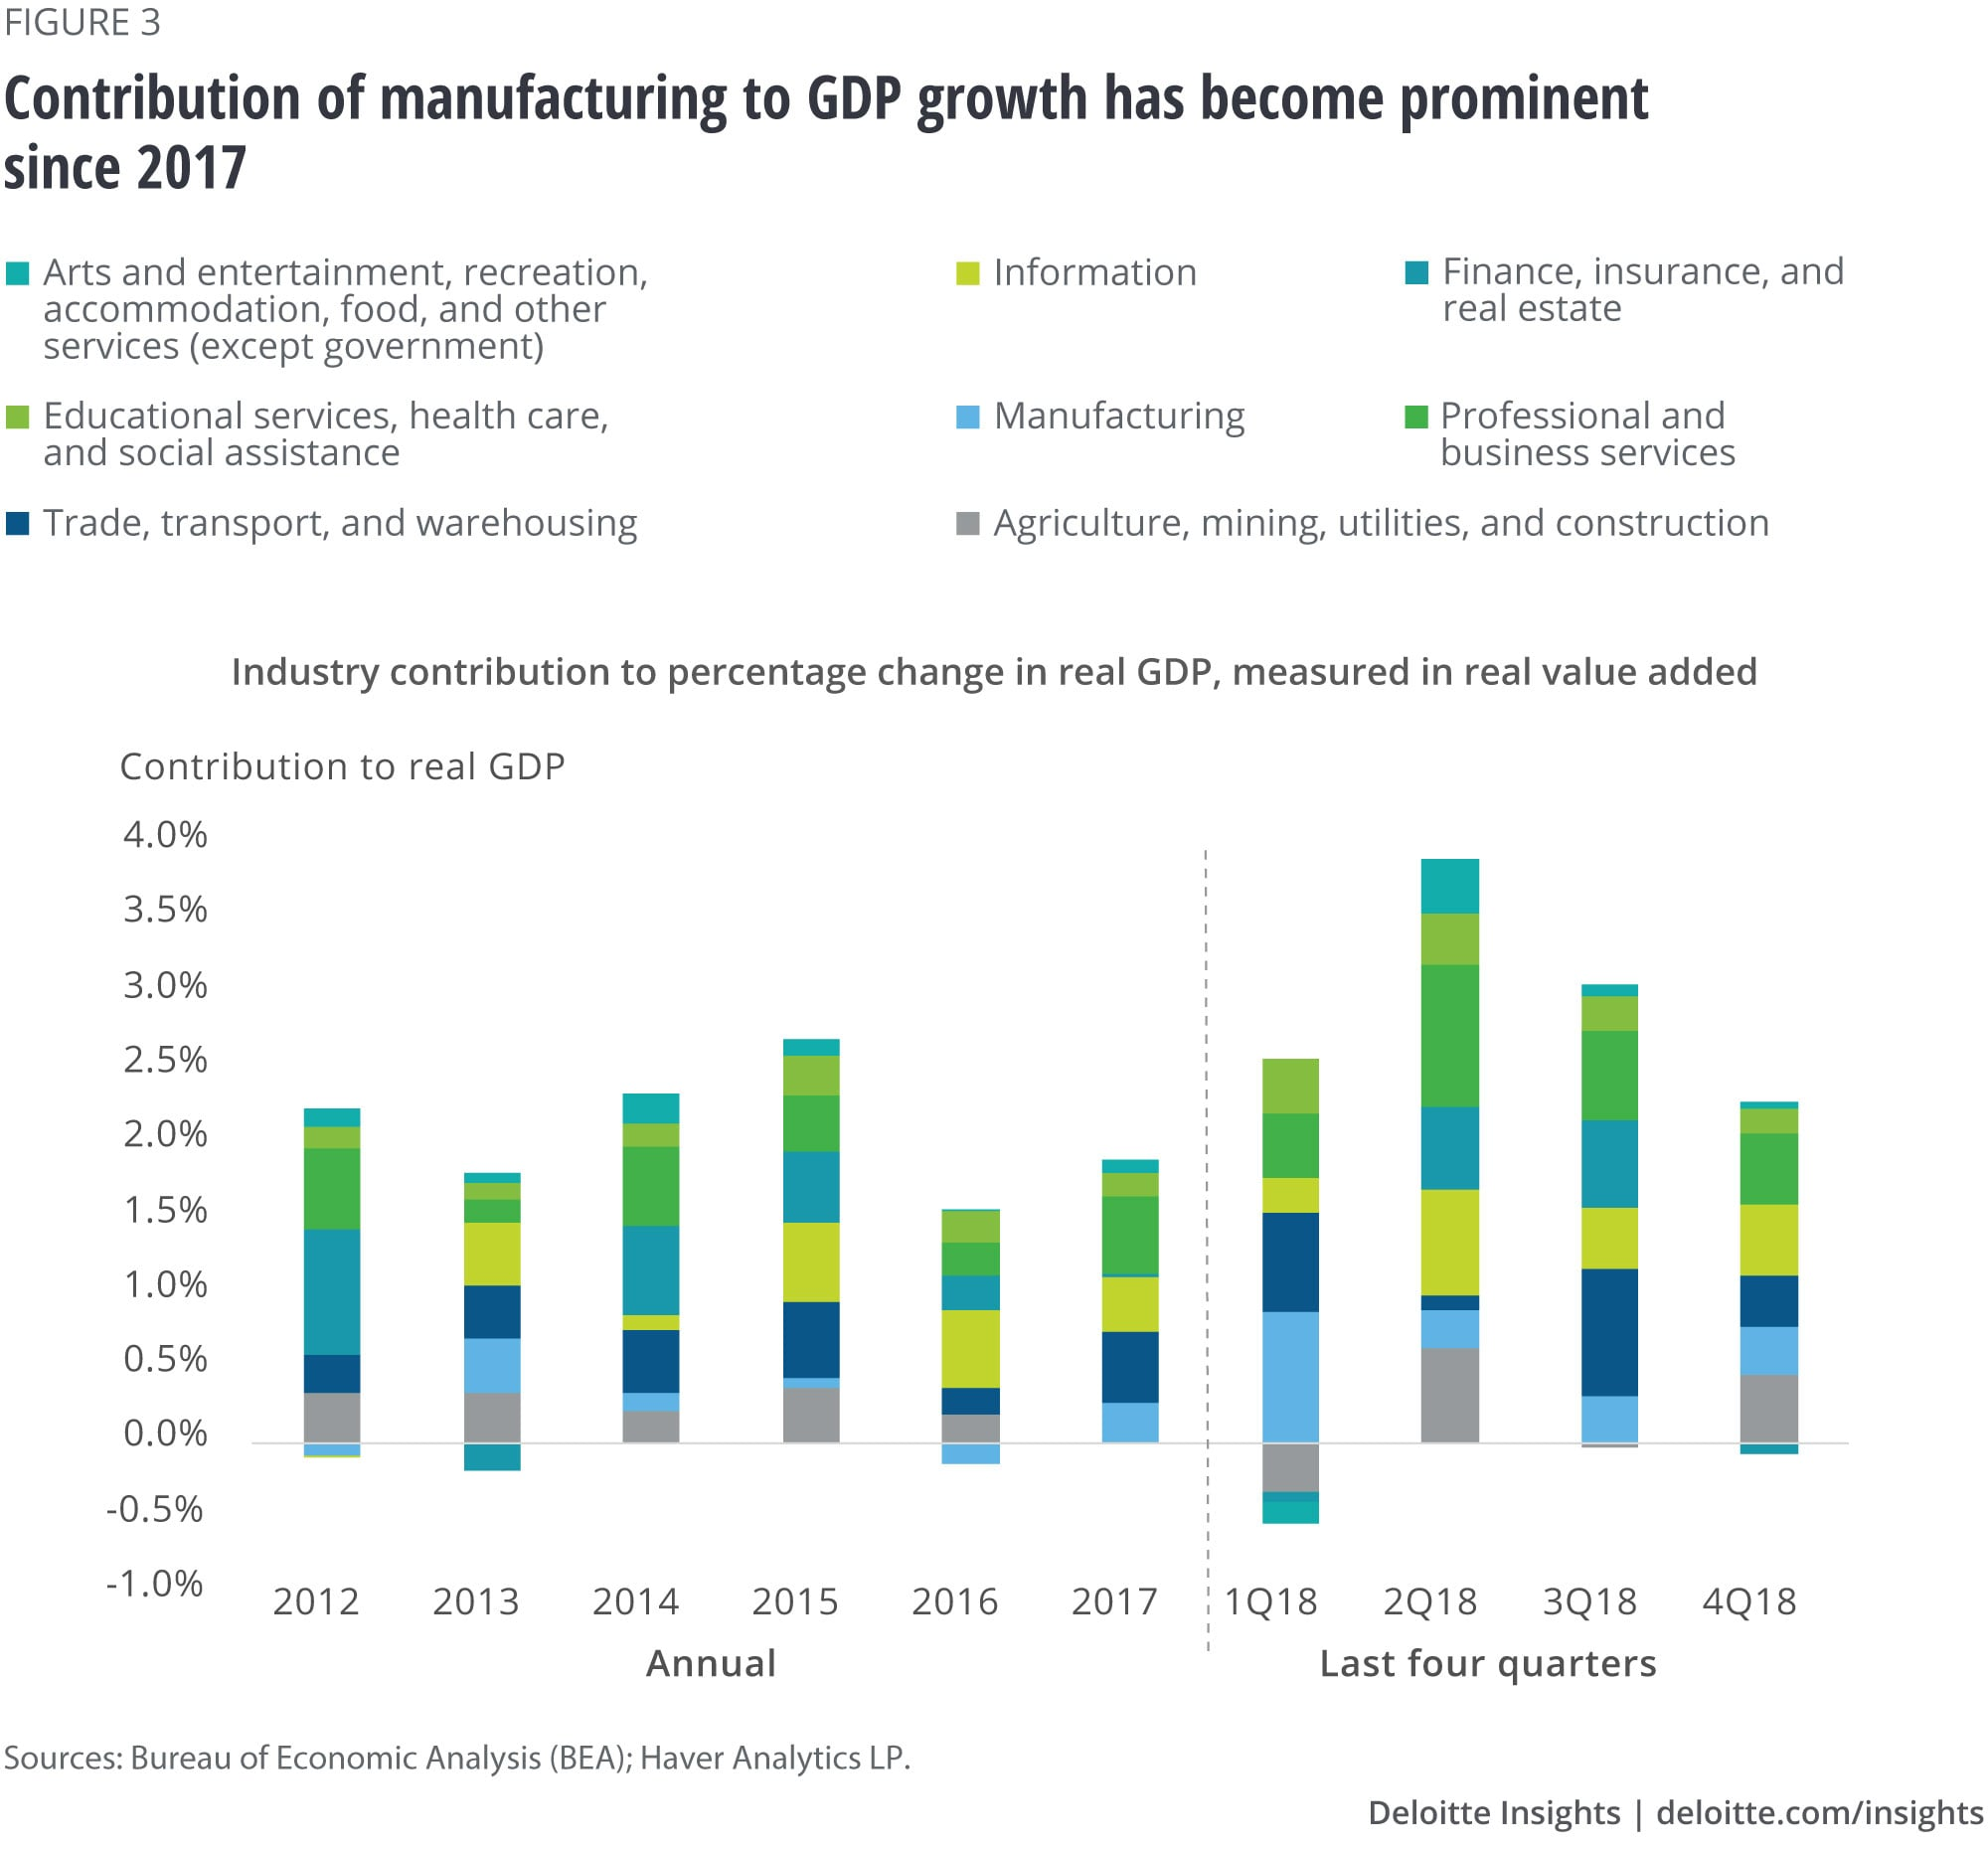 Contribution of manufacturing to GDP growth has become prominent since 2017